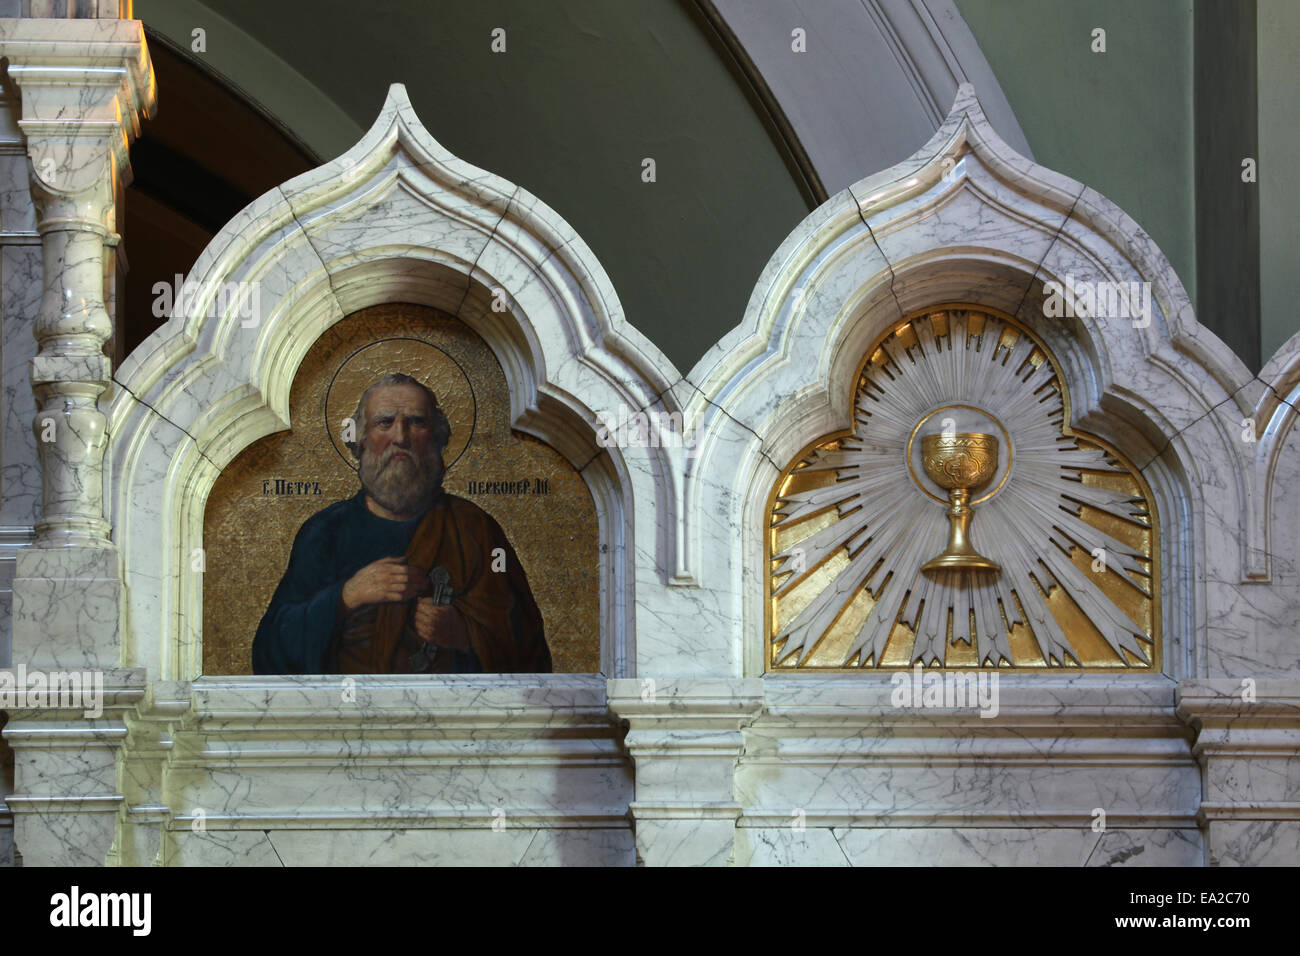 Saint Peter the Apostle. Icon in the marble iconostasis of the Russian Orthodox Church in Dresden, Saxony, Germany. - Stock Image